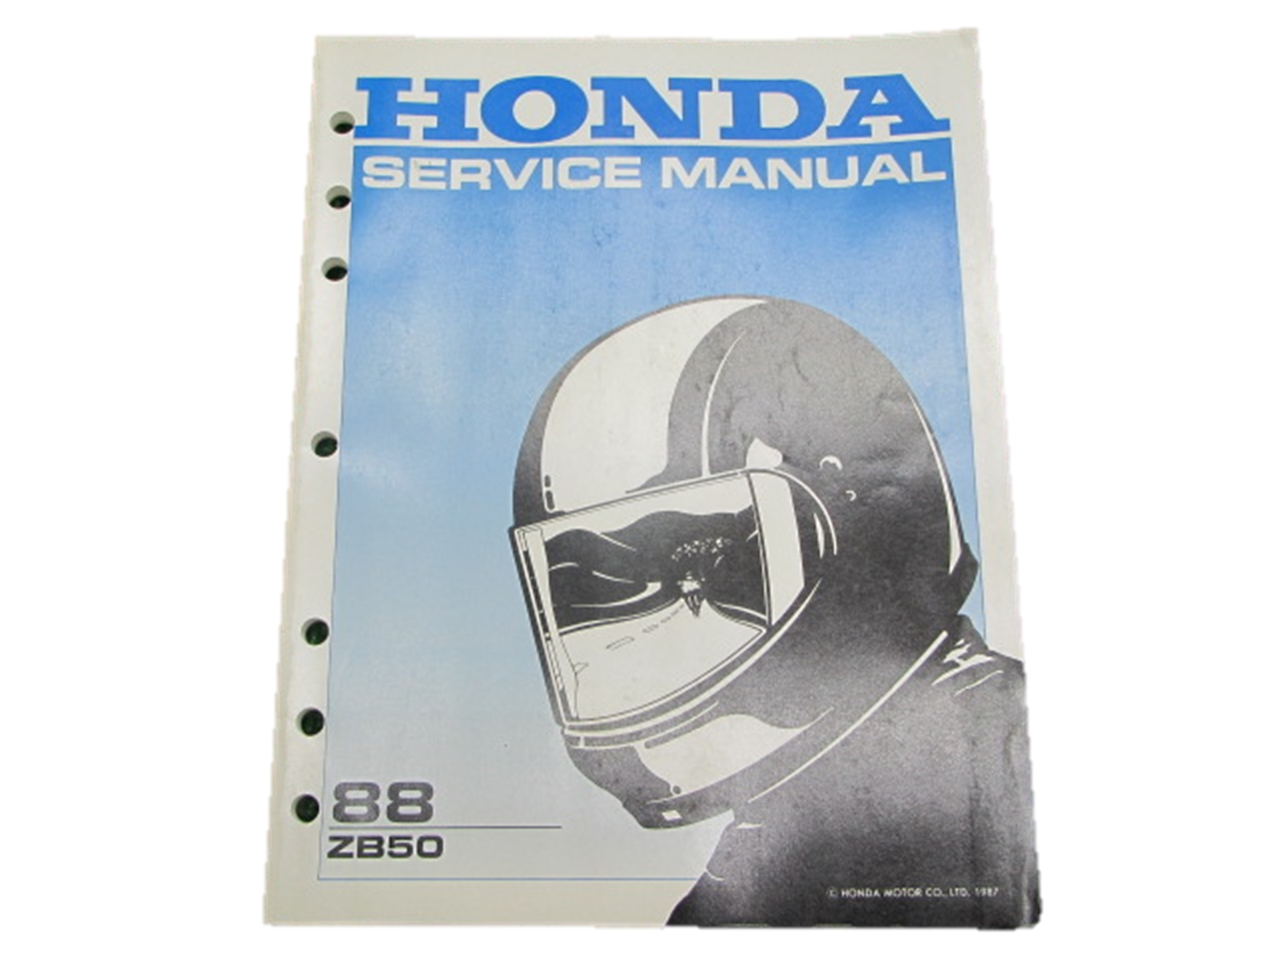 Image Is Loading HONDA Genuine Used Motorcycle Service Manual ZB50 In